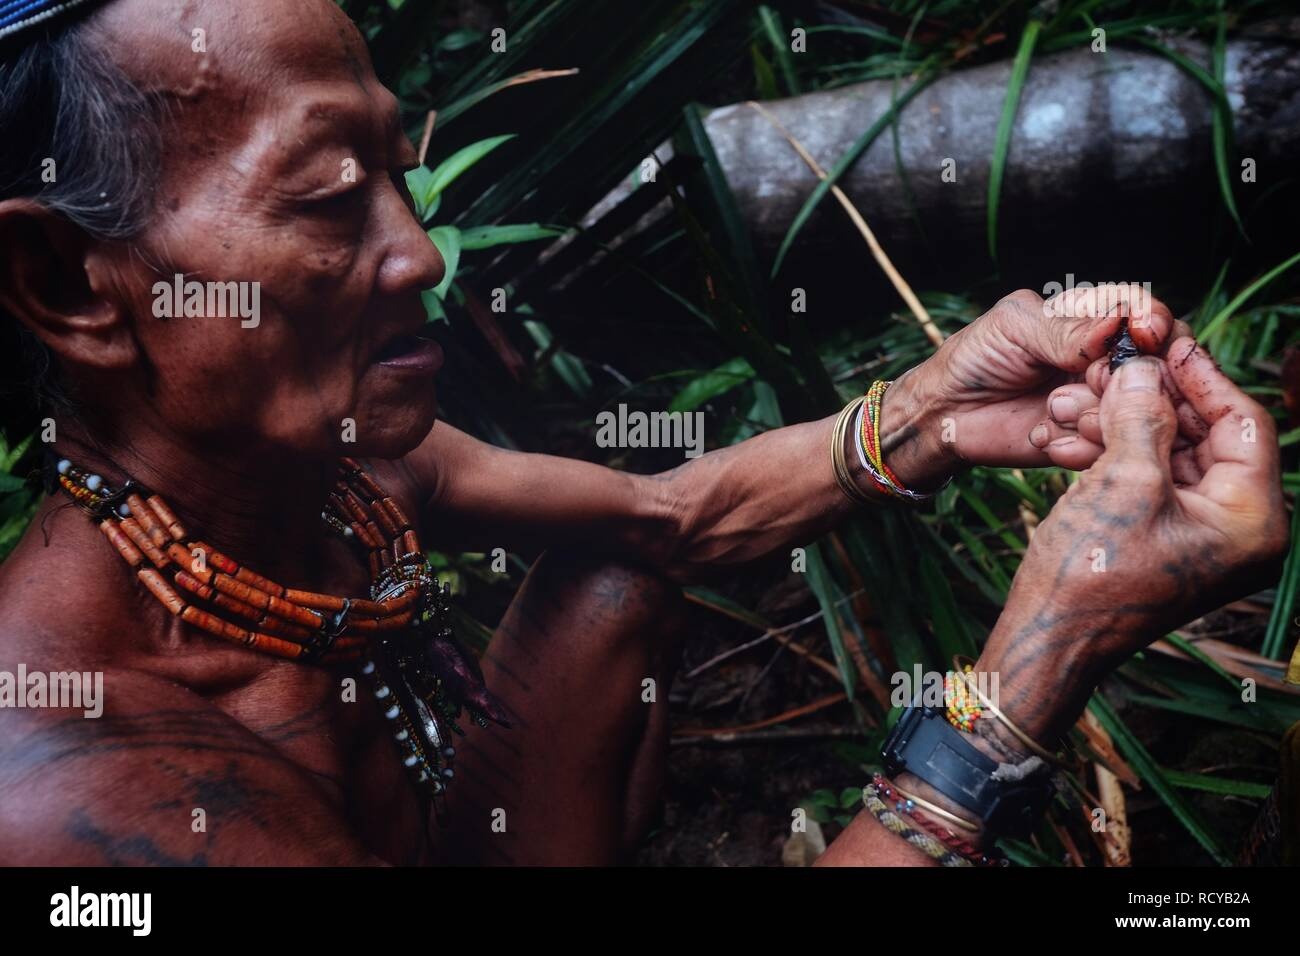 Muara Siberut, Mentawai Islands / Indonesia - Aug 15 2017: Tribal member Toikot collecting grubs from a fallen sago tree in the middle of the jungle - Stock Image